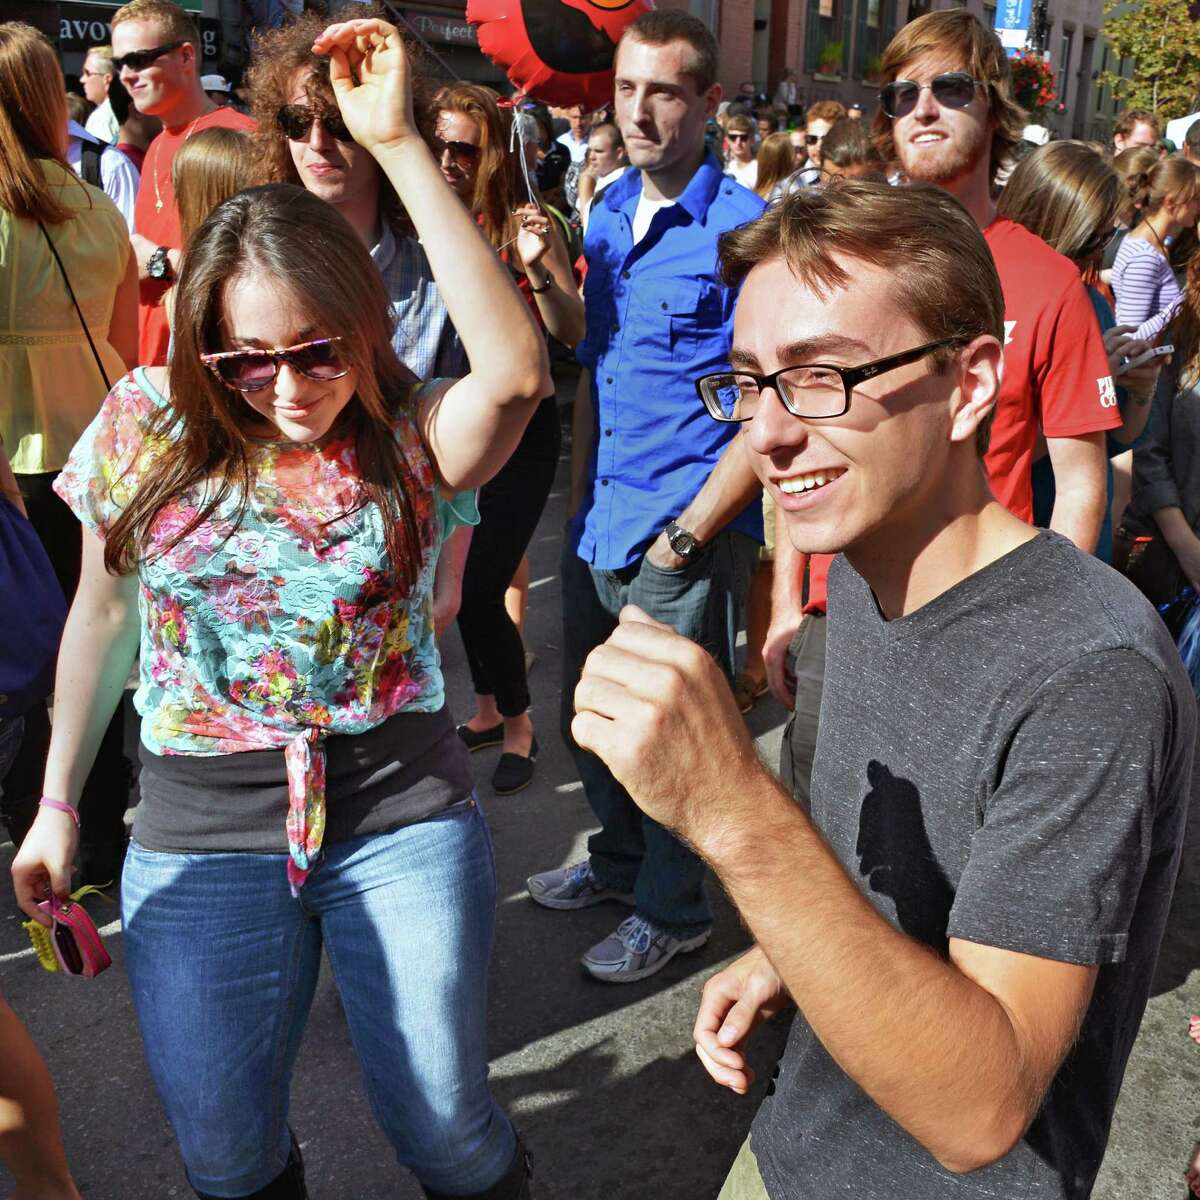 Lara Schechtman and Sam Piazza, both of latham, dance to the bands at LarkFEST 2012, New York's largest one-day street festival celebrating the Heart of Albany, Saturday Sept. 15, 2012. (John Carl D'Annibale / Times Union)